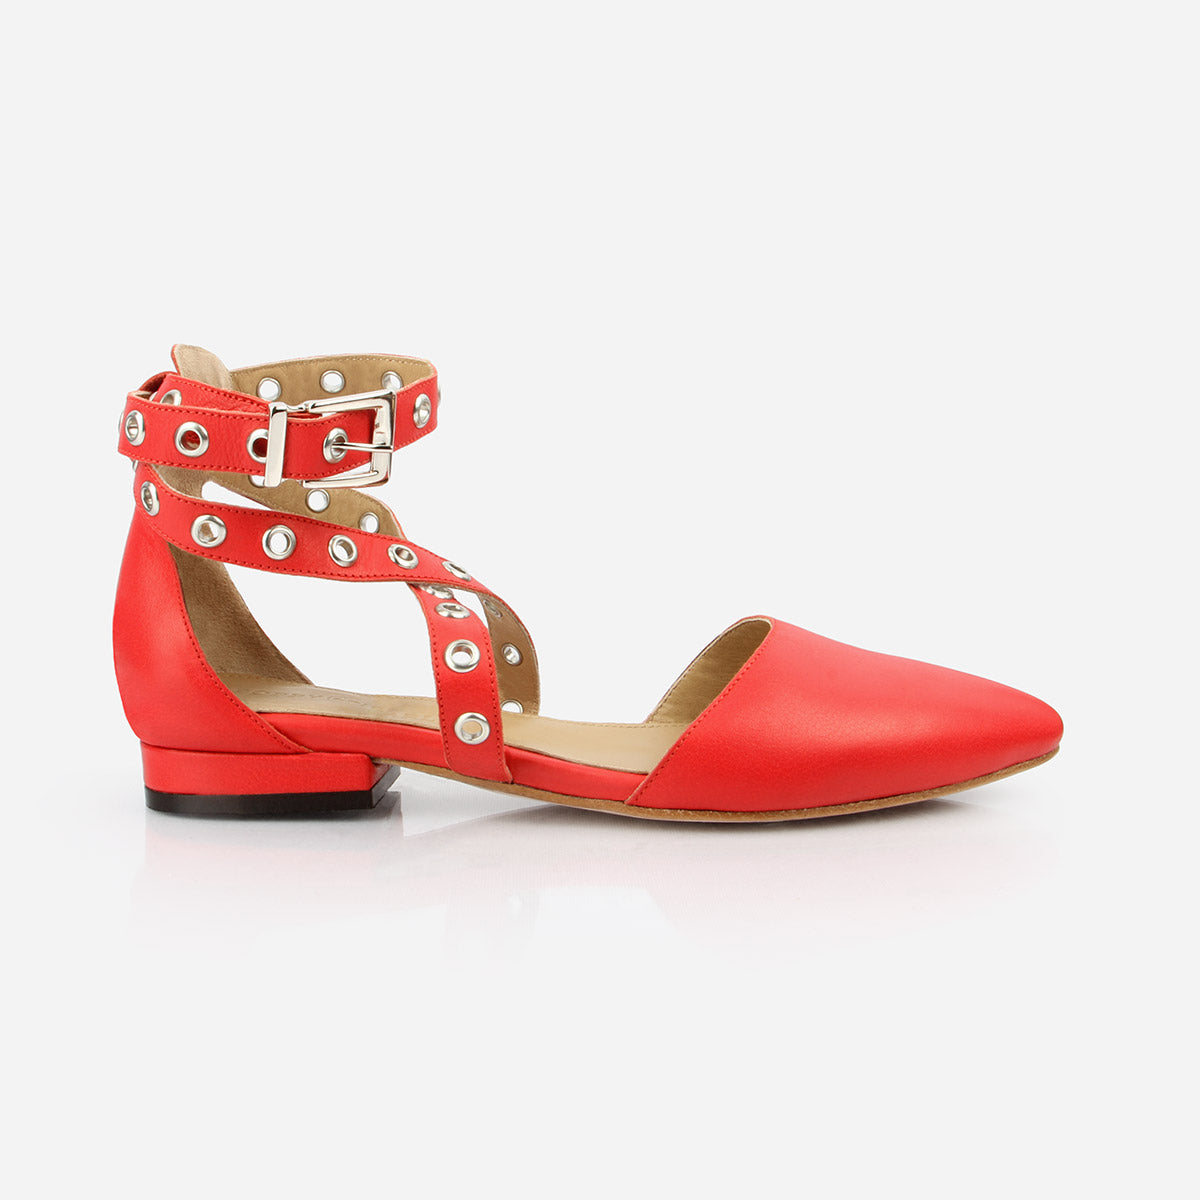 The The Eyelet Strappy Sandal Flame Red - Poppy Barley